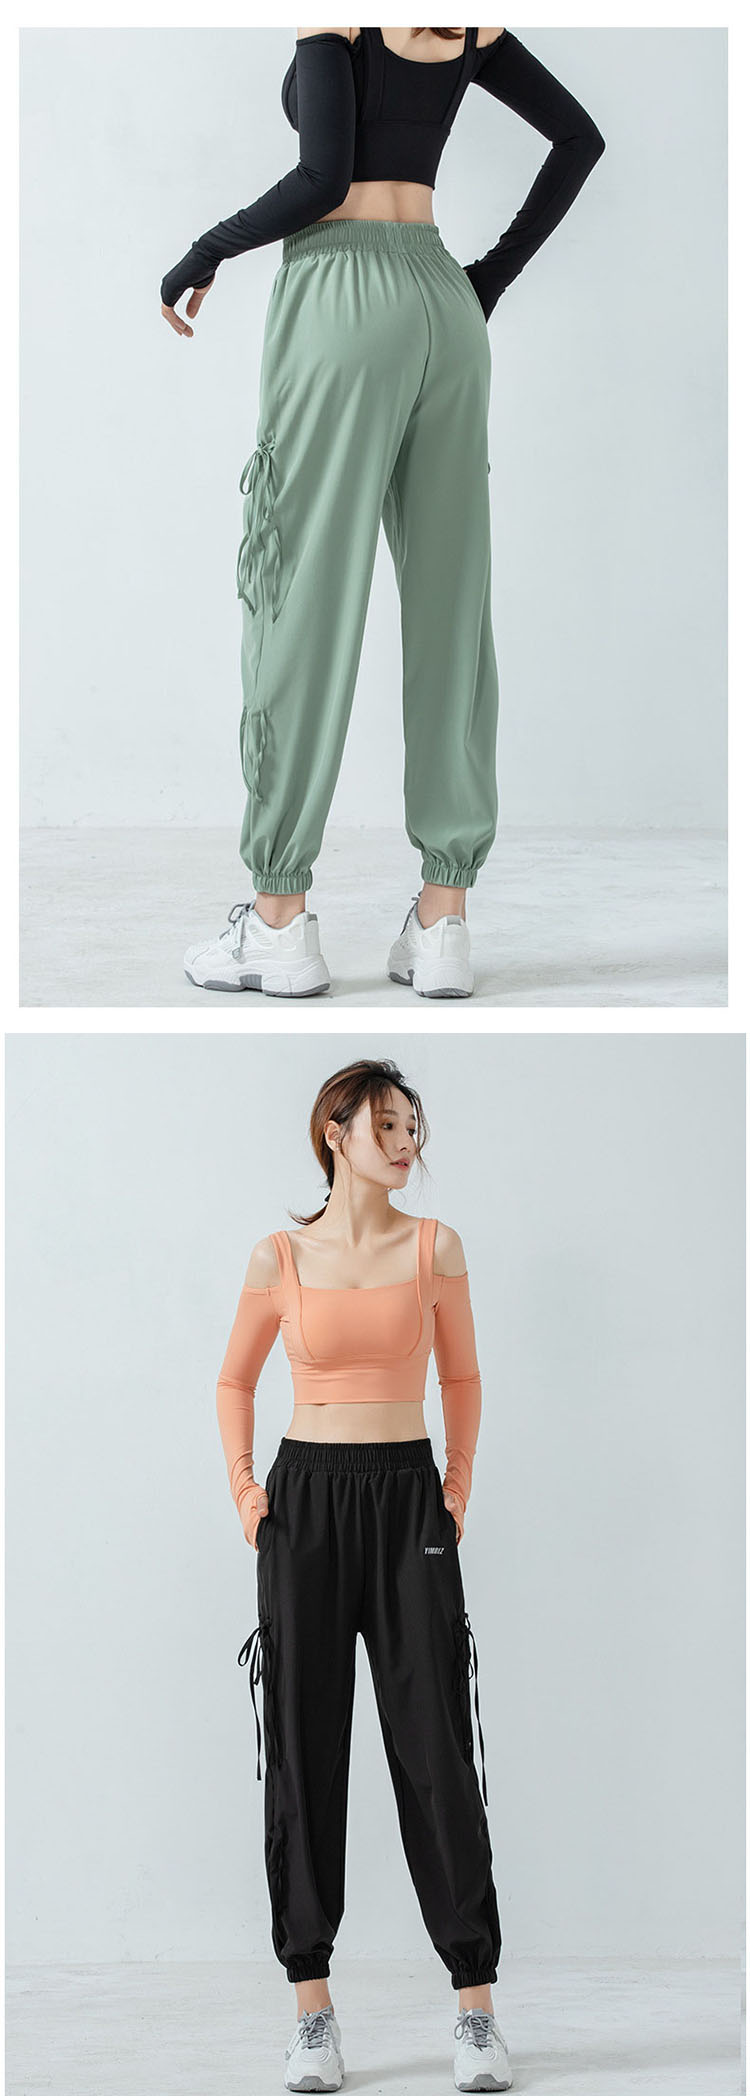 The side drawstring design can adjust the length and lengthen the legs to show the figure.